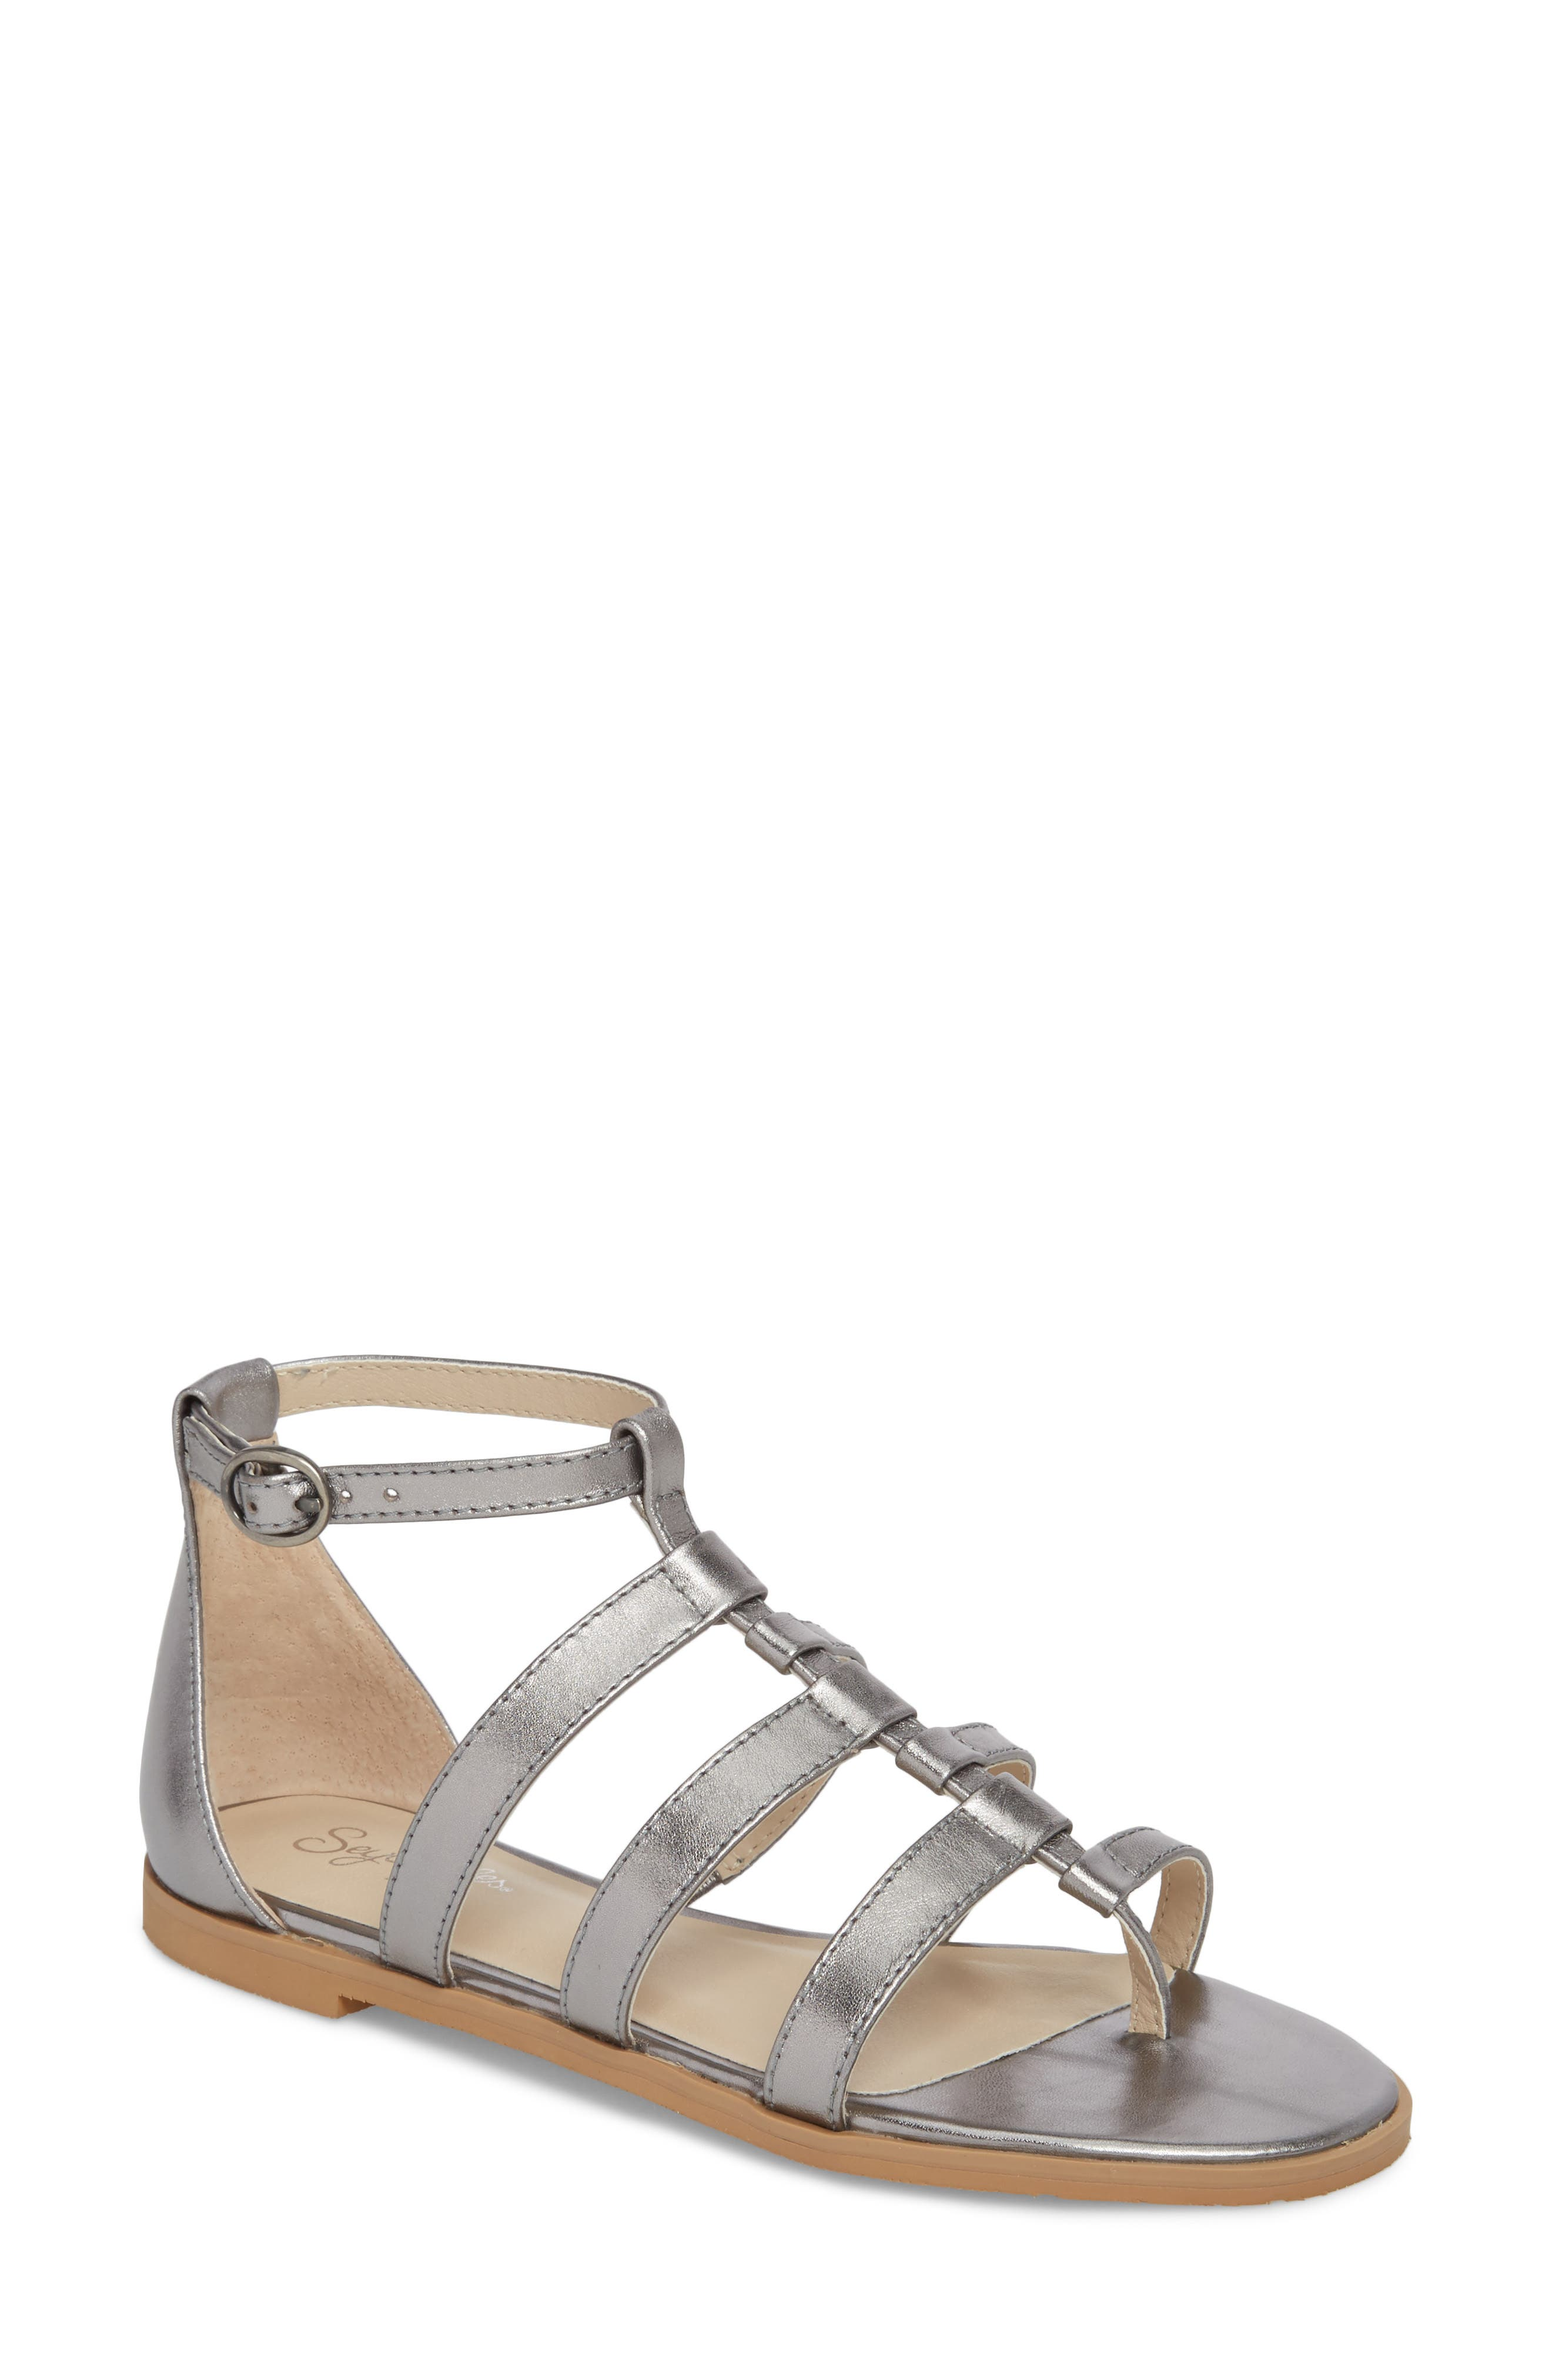 Contribution Sandal,                         Main,                         color, Pewter Leather